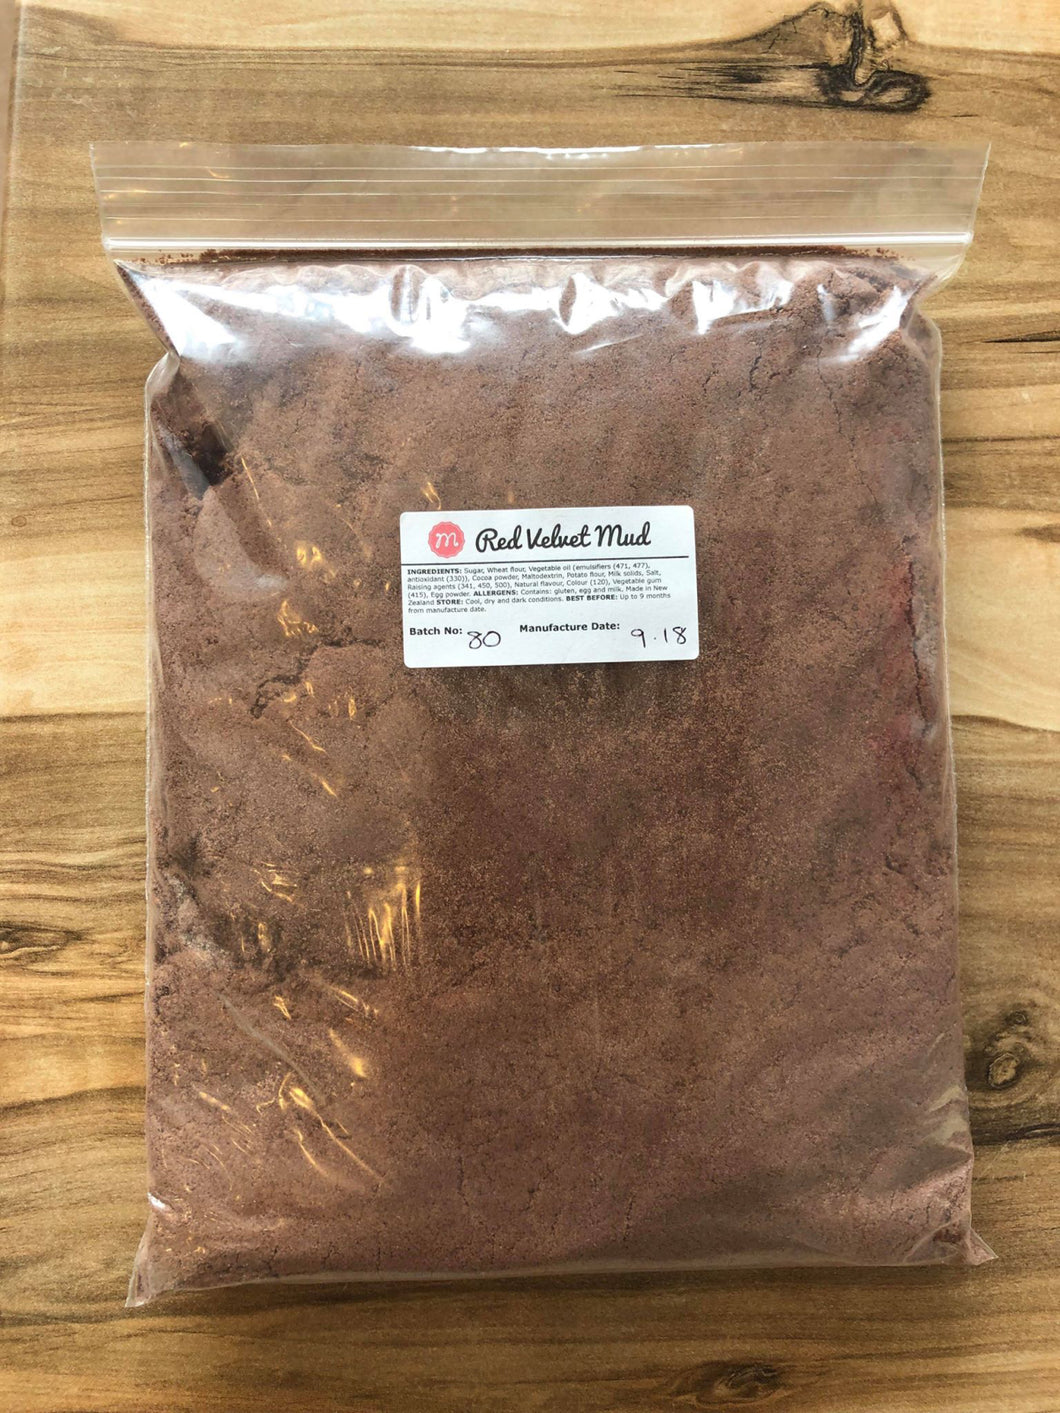 Cake Mix 1kg - Red Velvet Mud